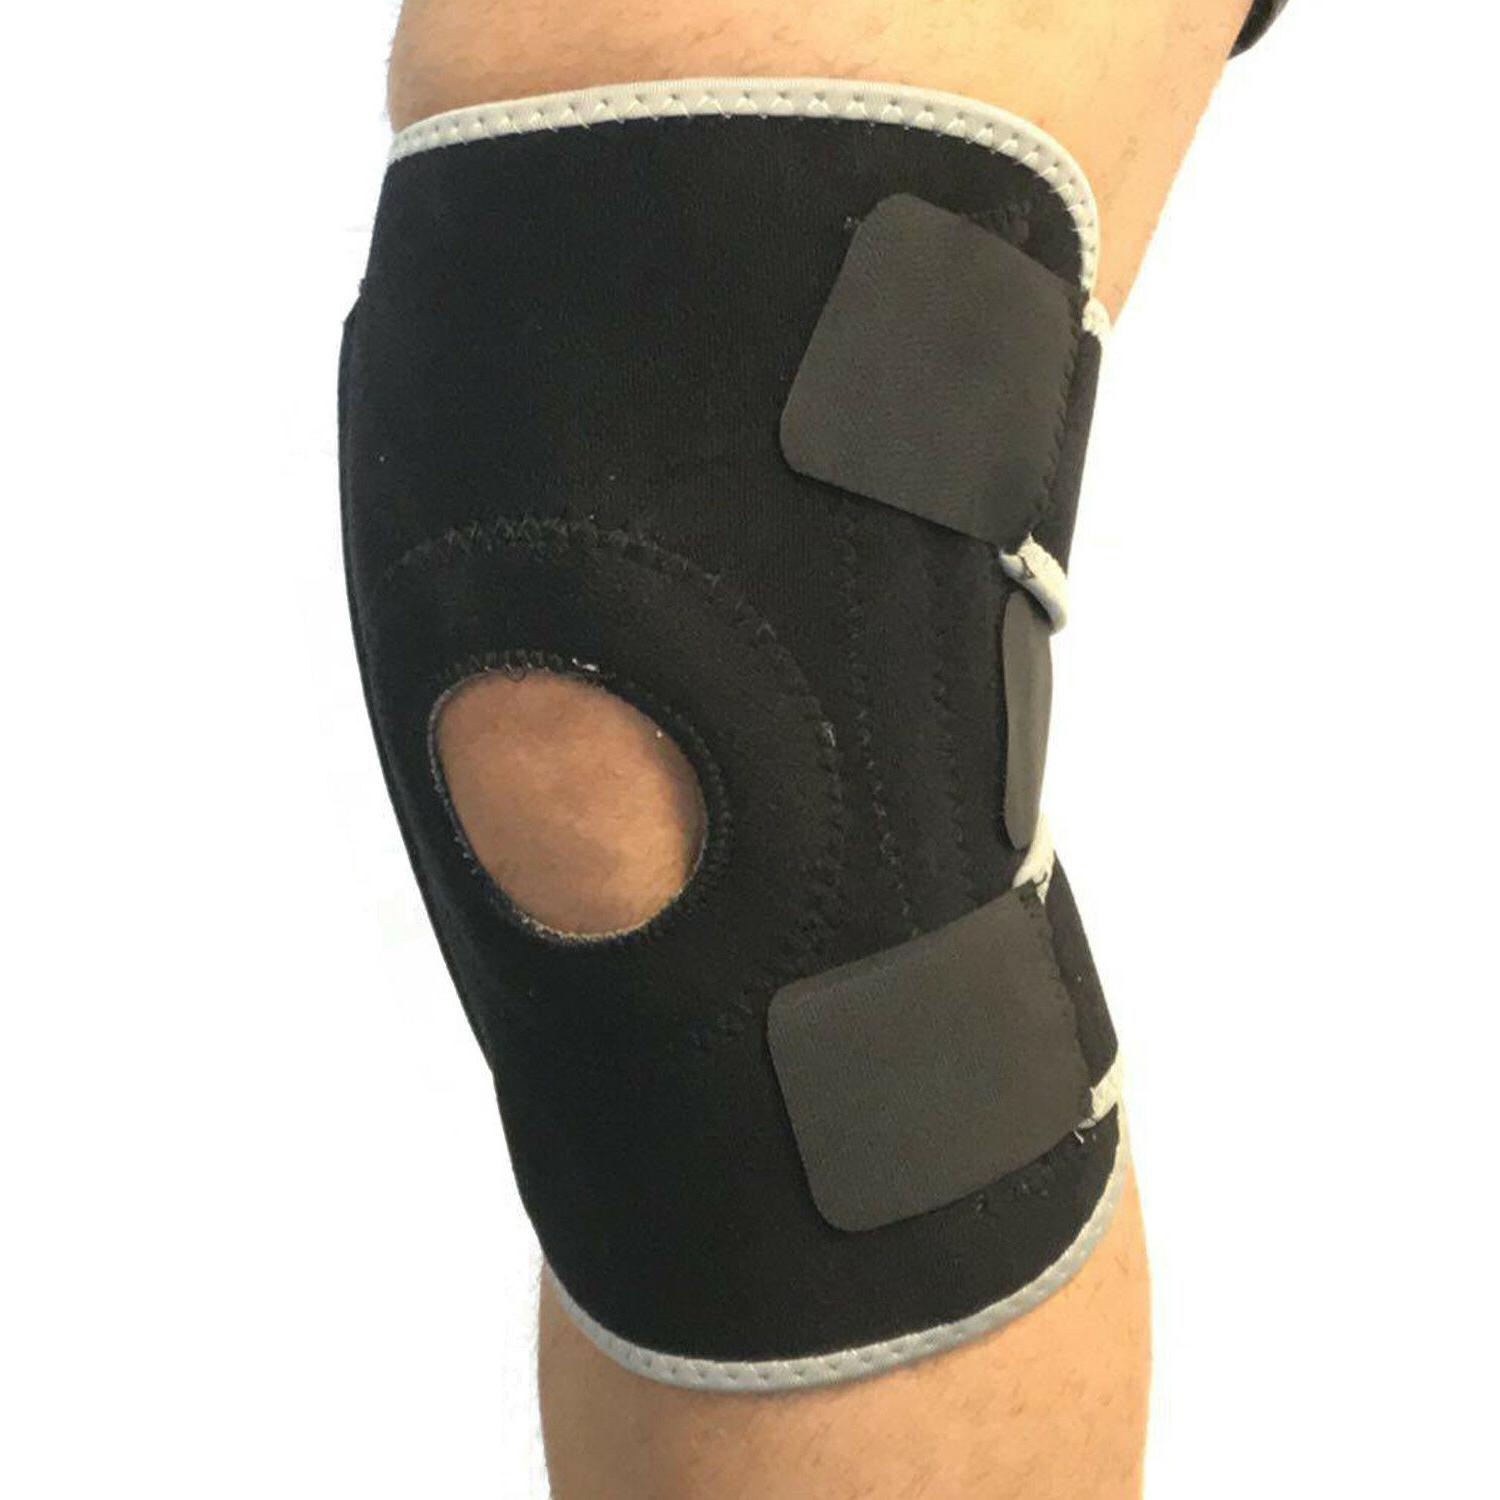 Patella Elastic Knee Fastener Support Guard Sports Kneecap Stabilizer